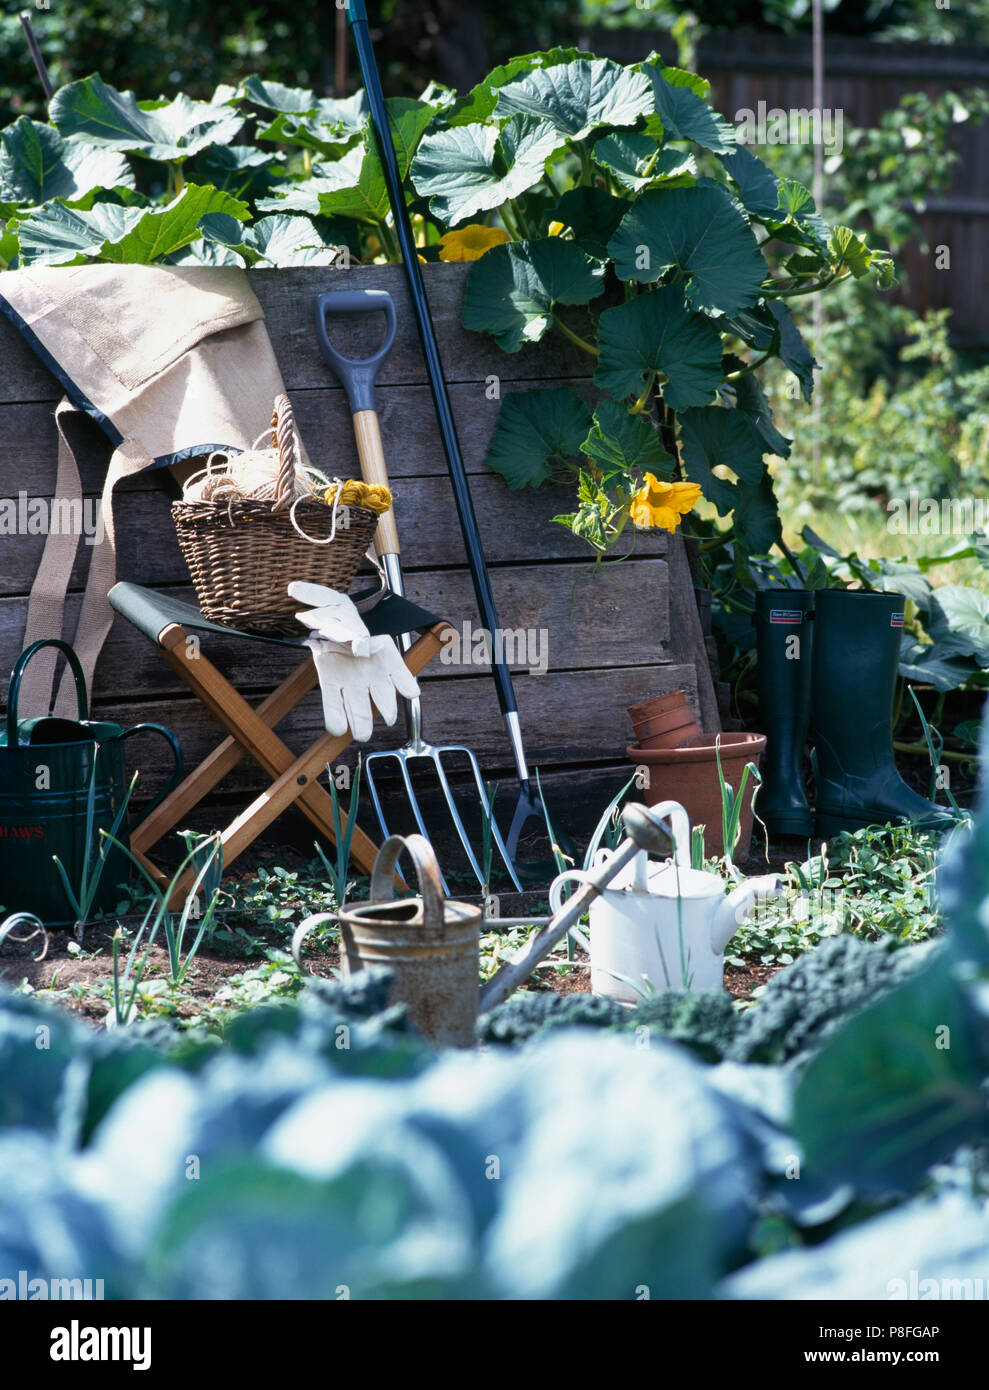 Peachy Garden Fork Beside A Canvas Stool With A Vintage Basket Gmtry Best Dining Table And Chair Ideas Images Gmtryco